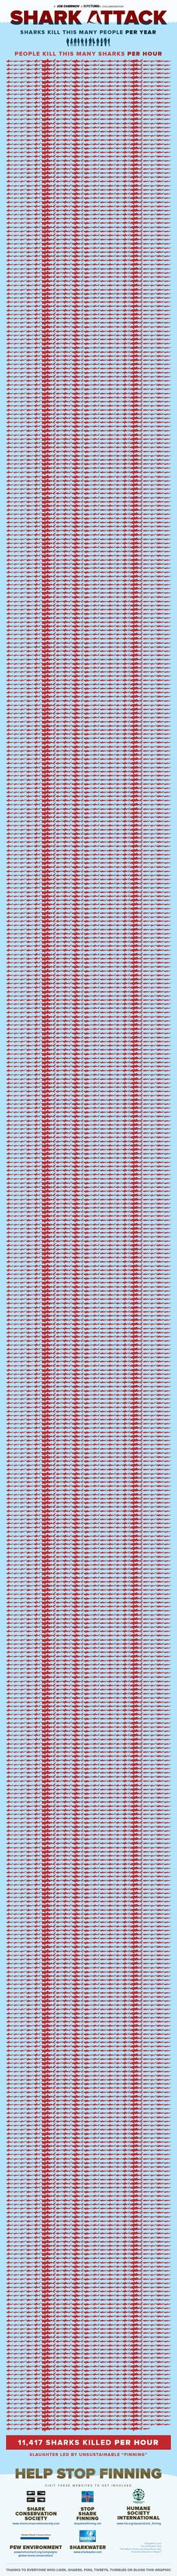 This is how many sharks are killed every hour.